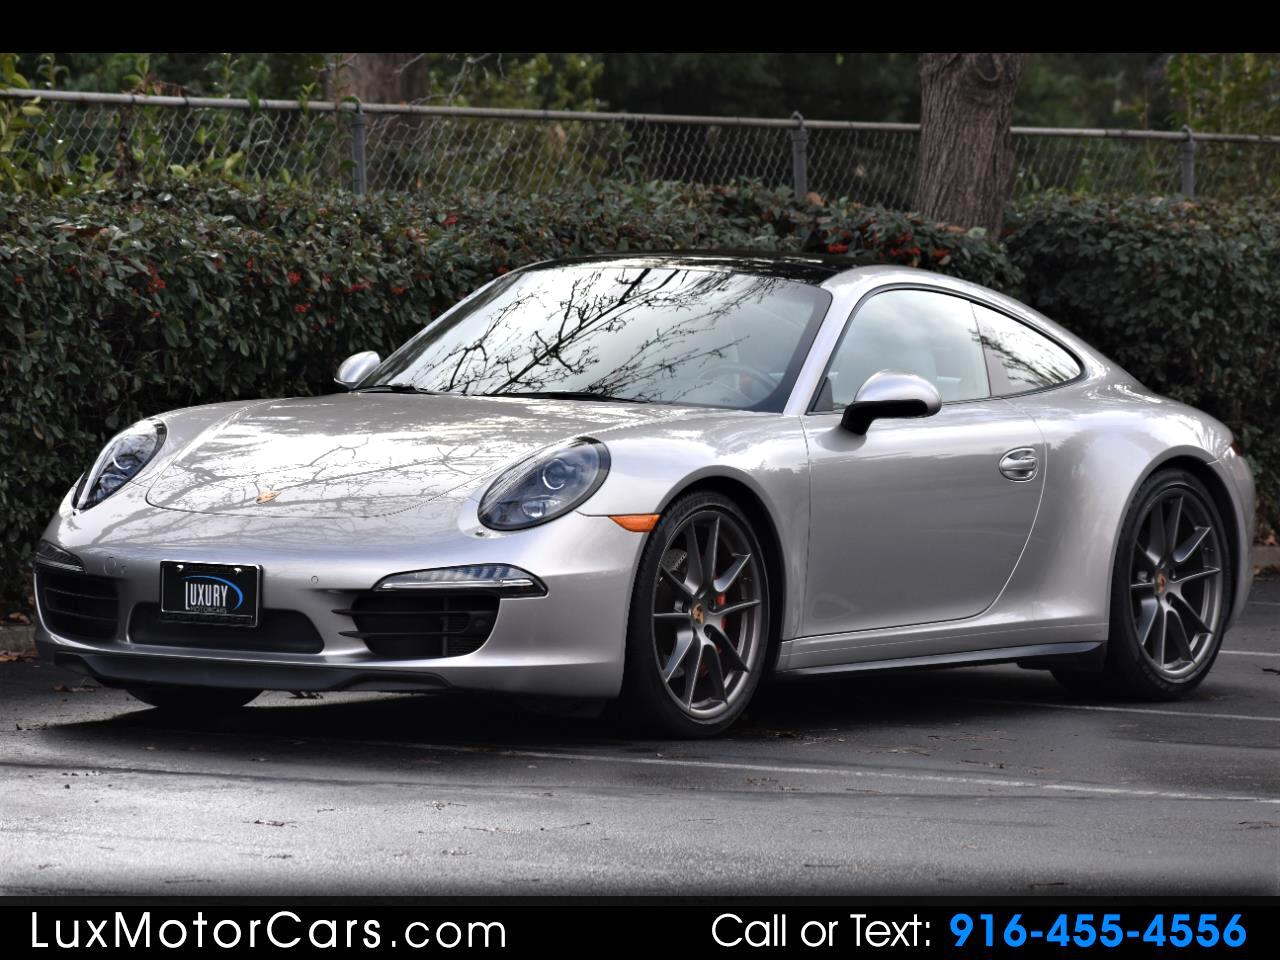 2013 Porsche 911 Carrera 4S Coupe